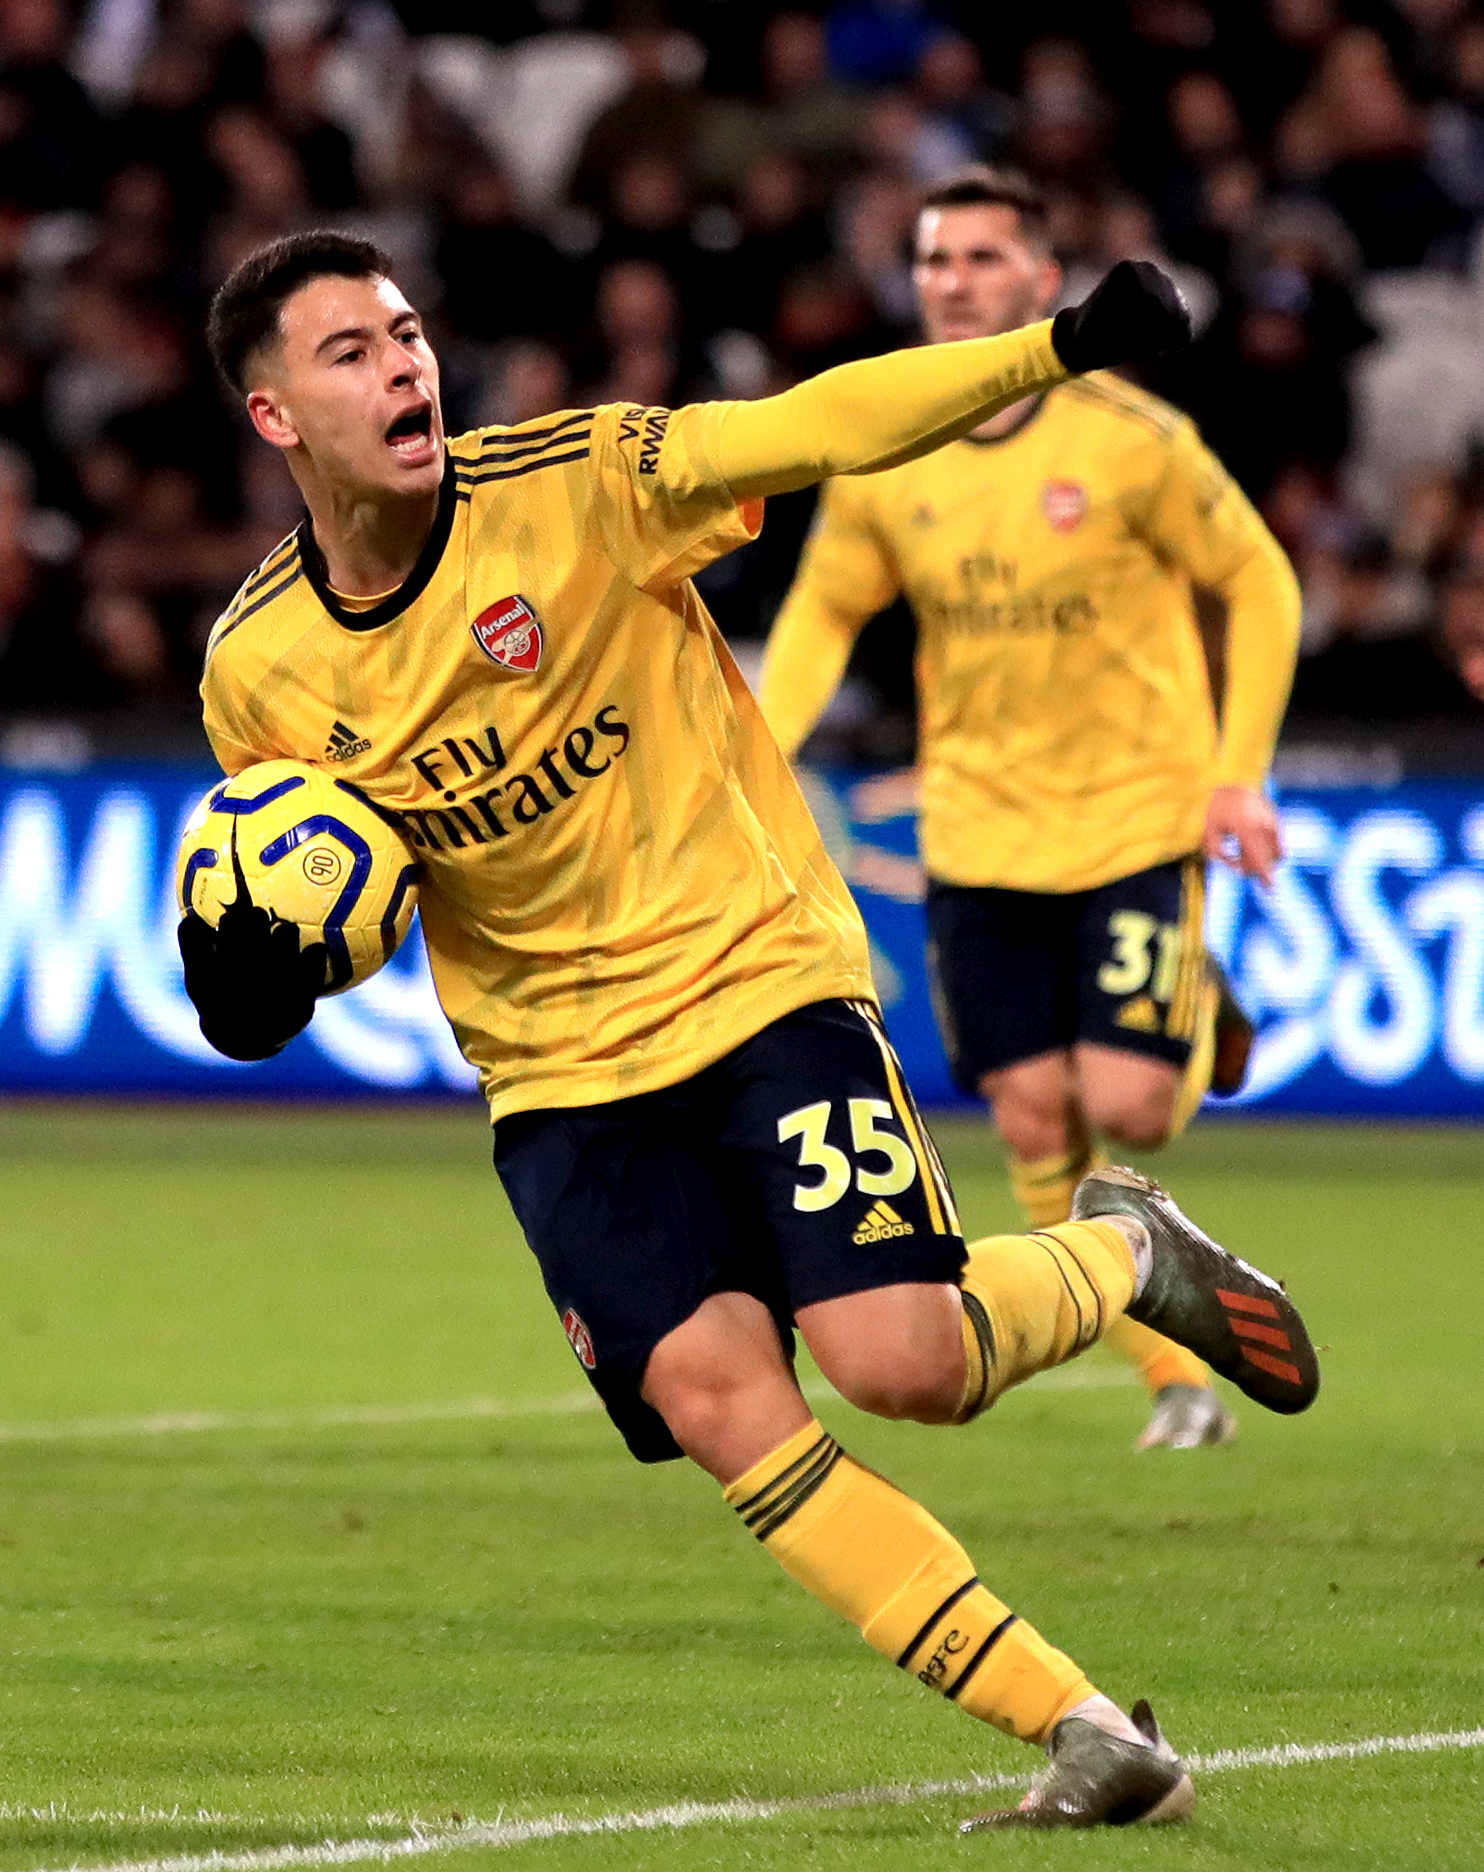 Gabi Martinelli: I want to win the Champions League with Arsenal